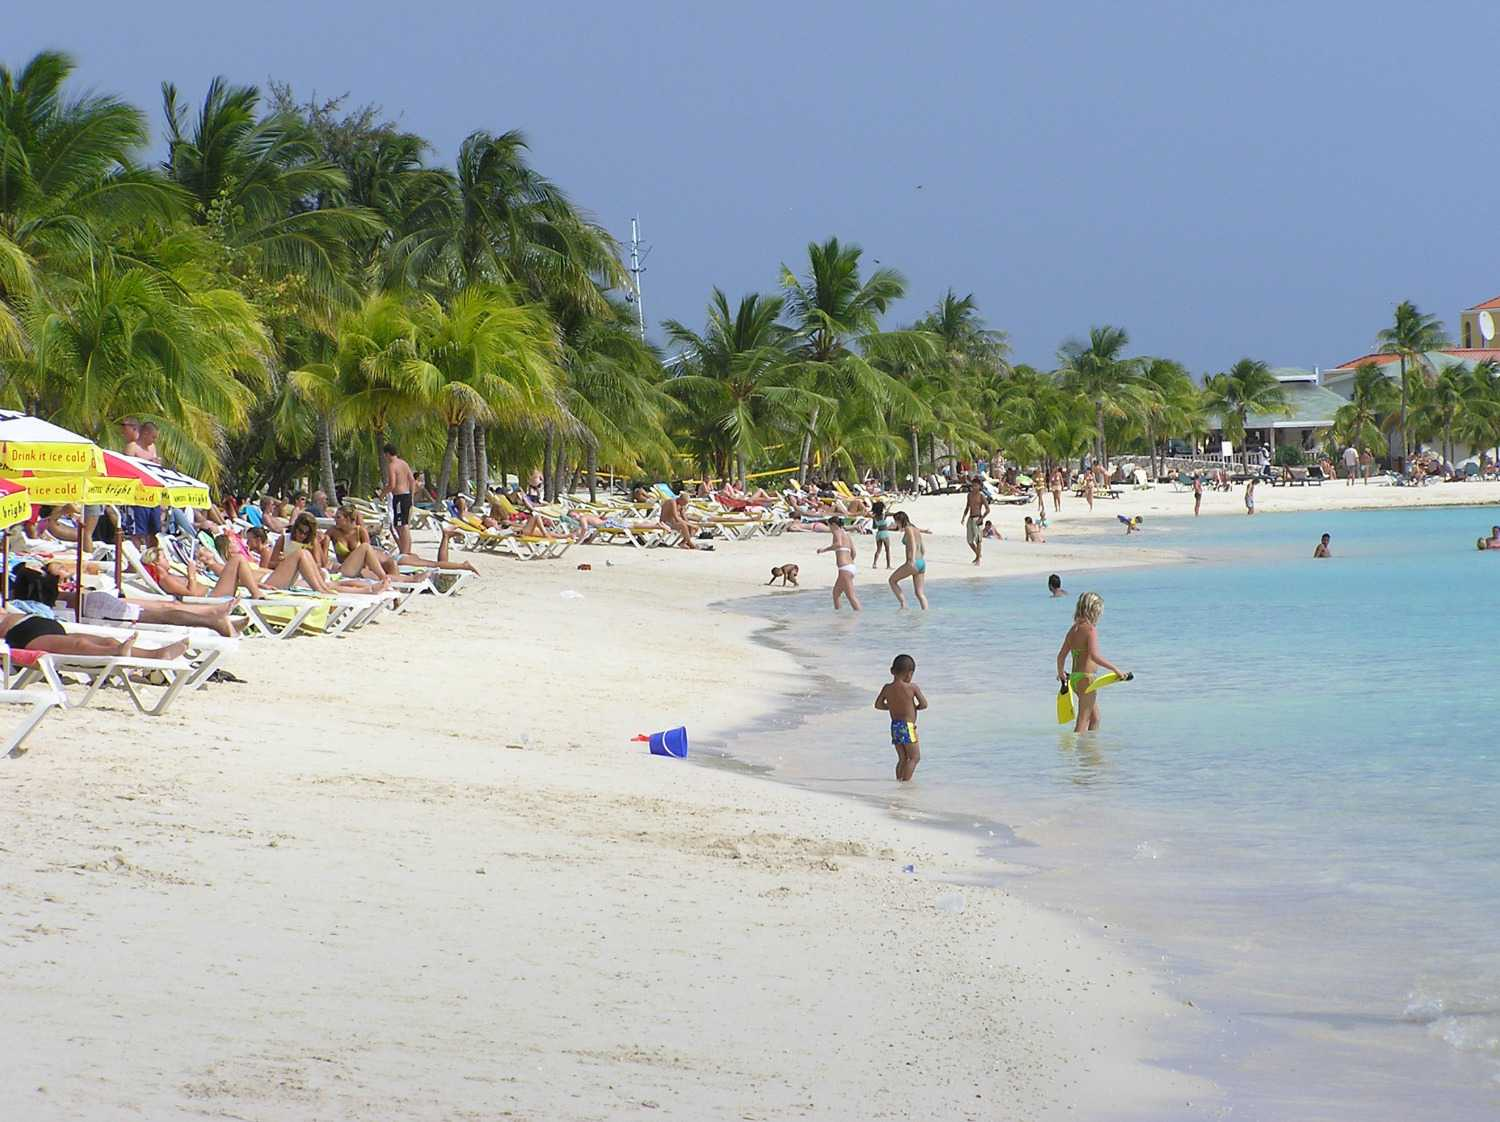 People enjoying Mambo Beach in Curaçao, both on sand and in clear blue water. Beach is lined with palm trees.